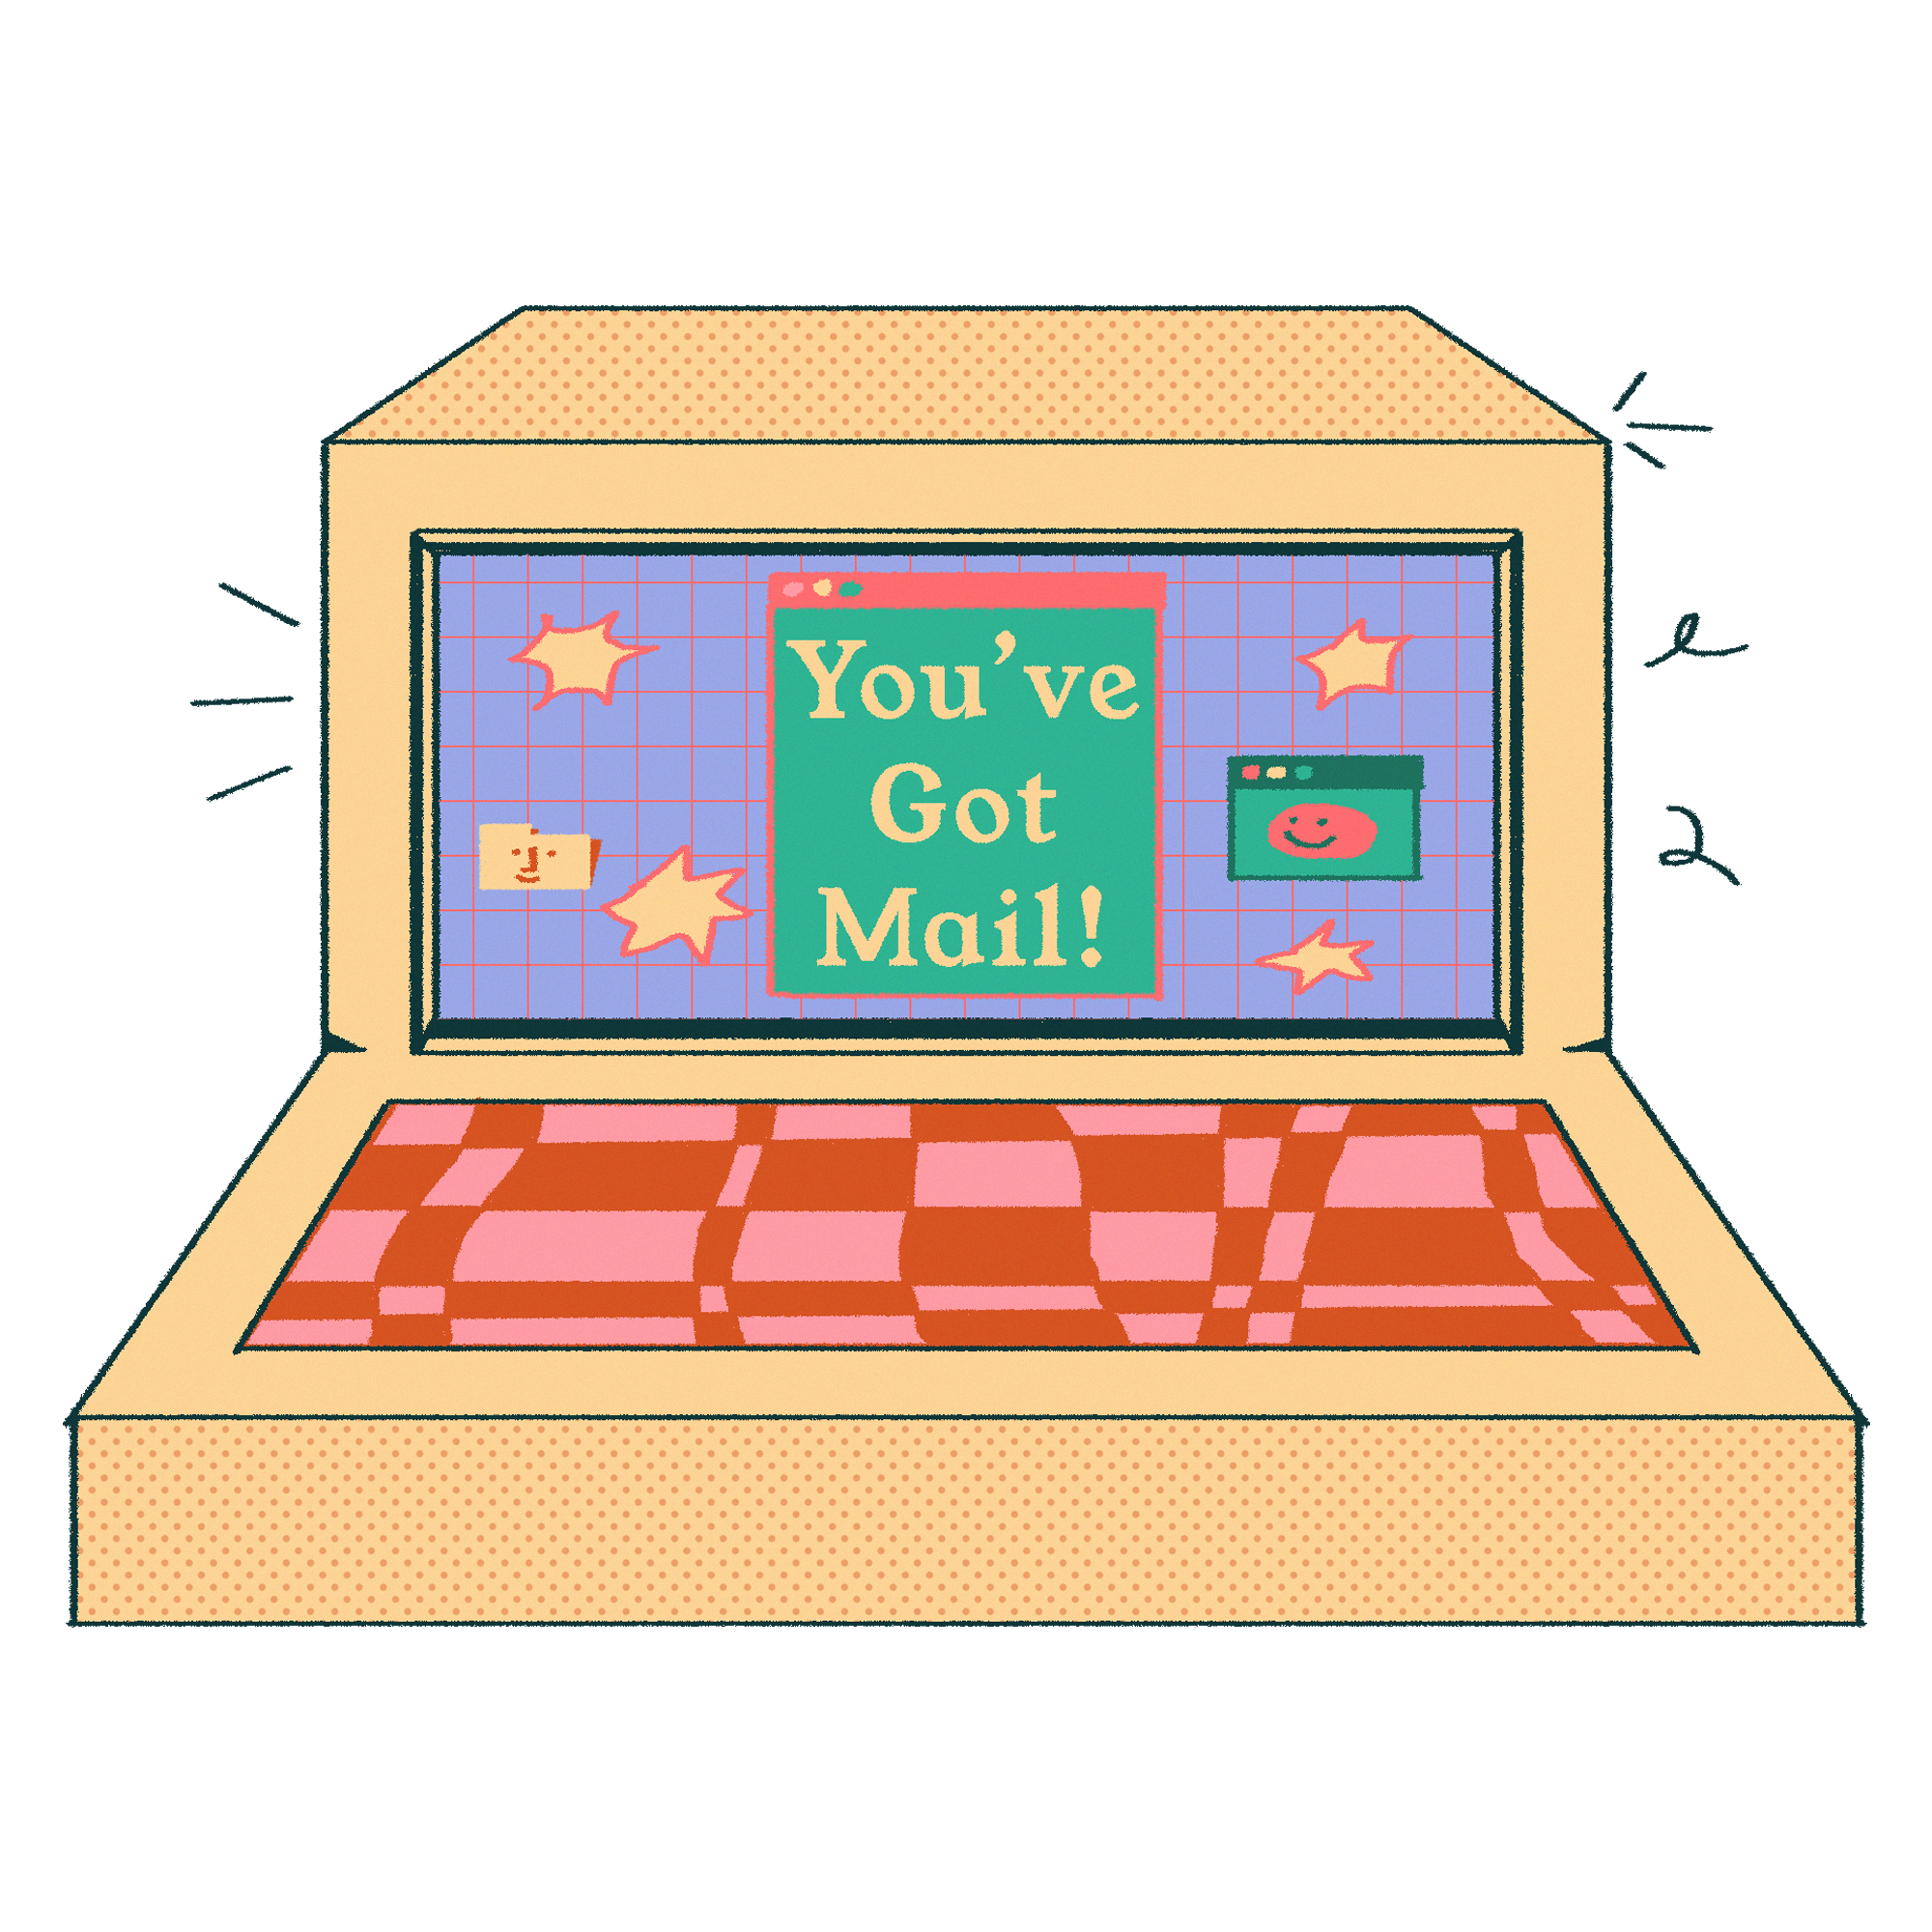 illustration of a retro desktop computer